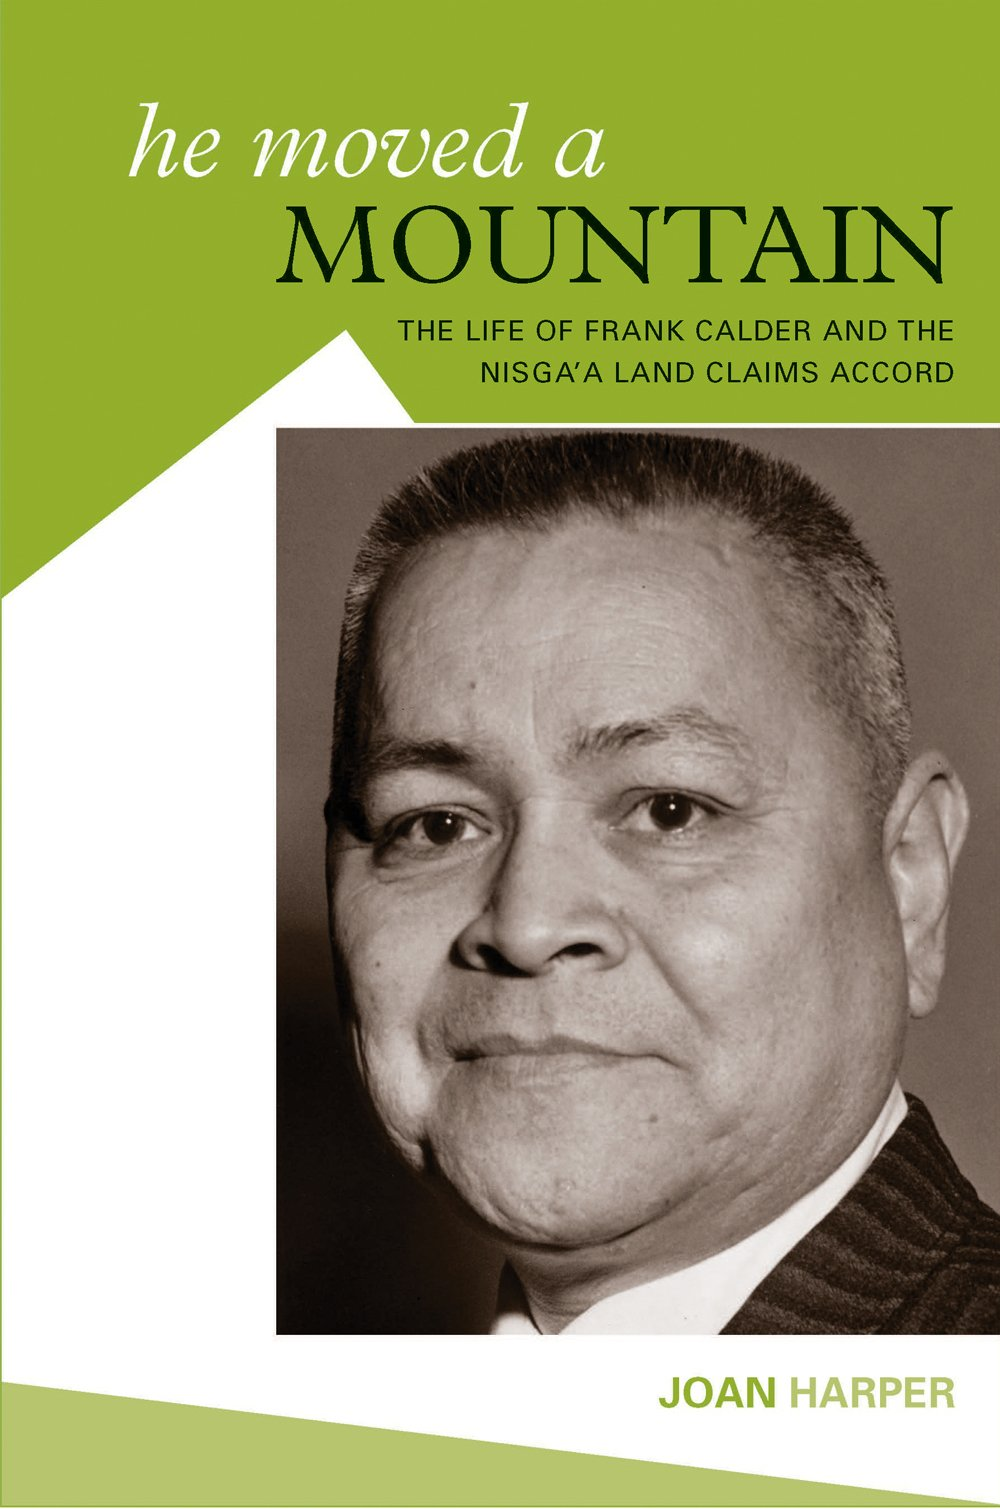 he-moved-a-mountain-the-life-of-frank-calder-and-the-nisga-a-land-claims-accord